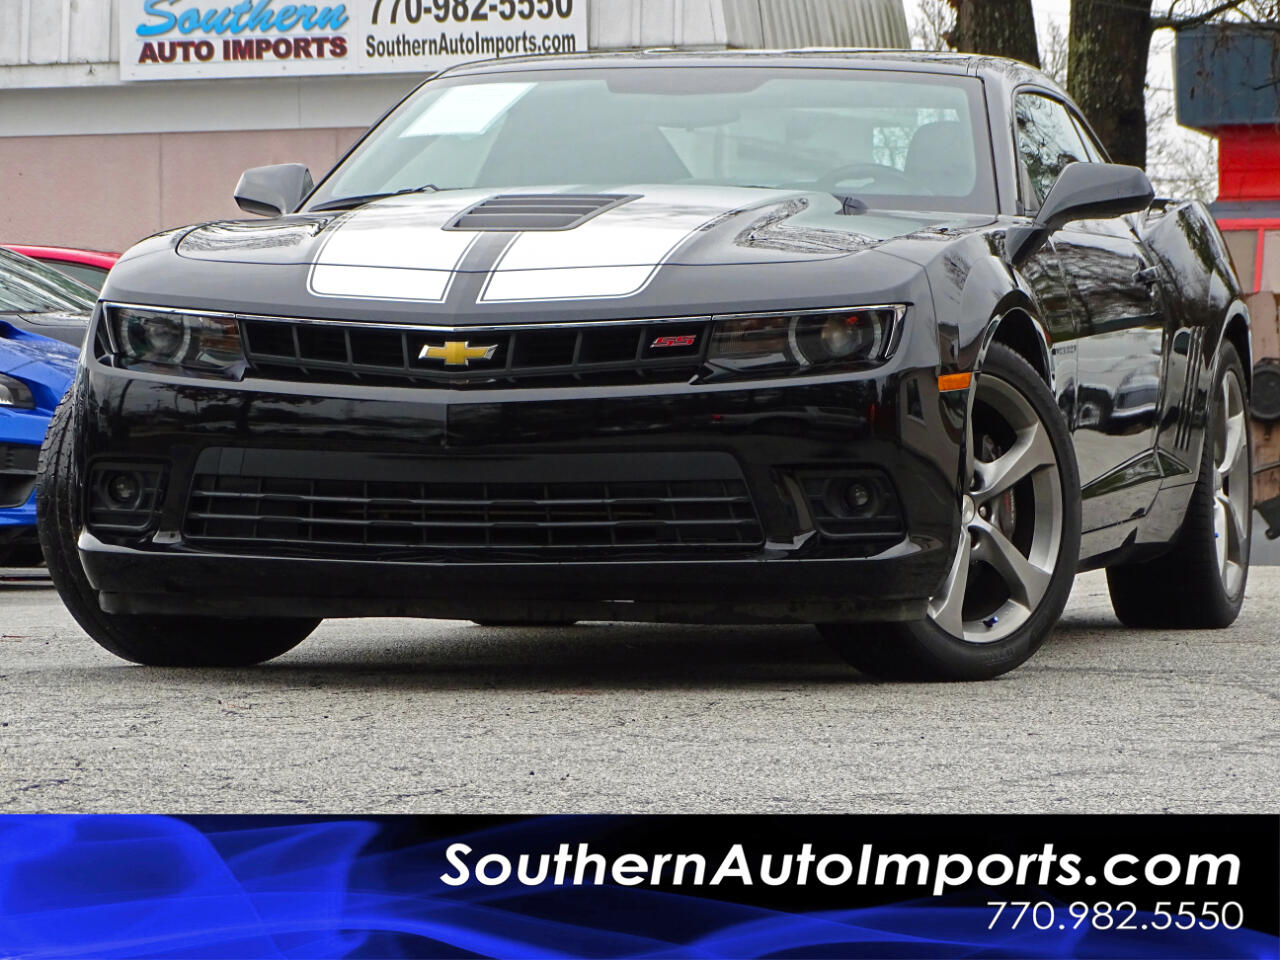 2014 Chevrolet Camaro 2dr Cpe SS w/1SS